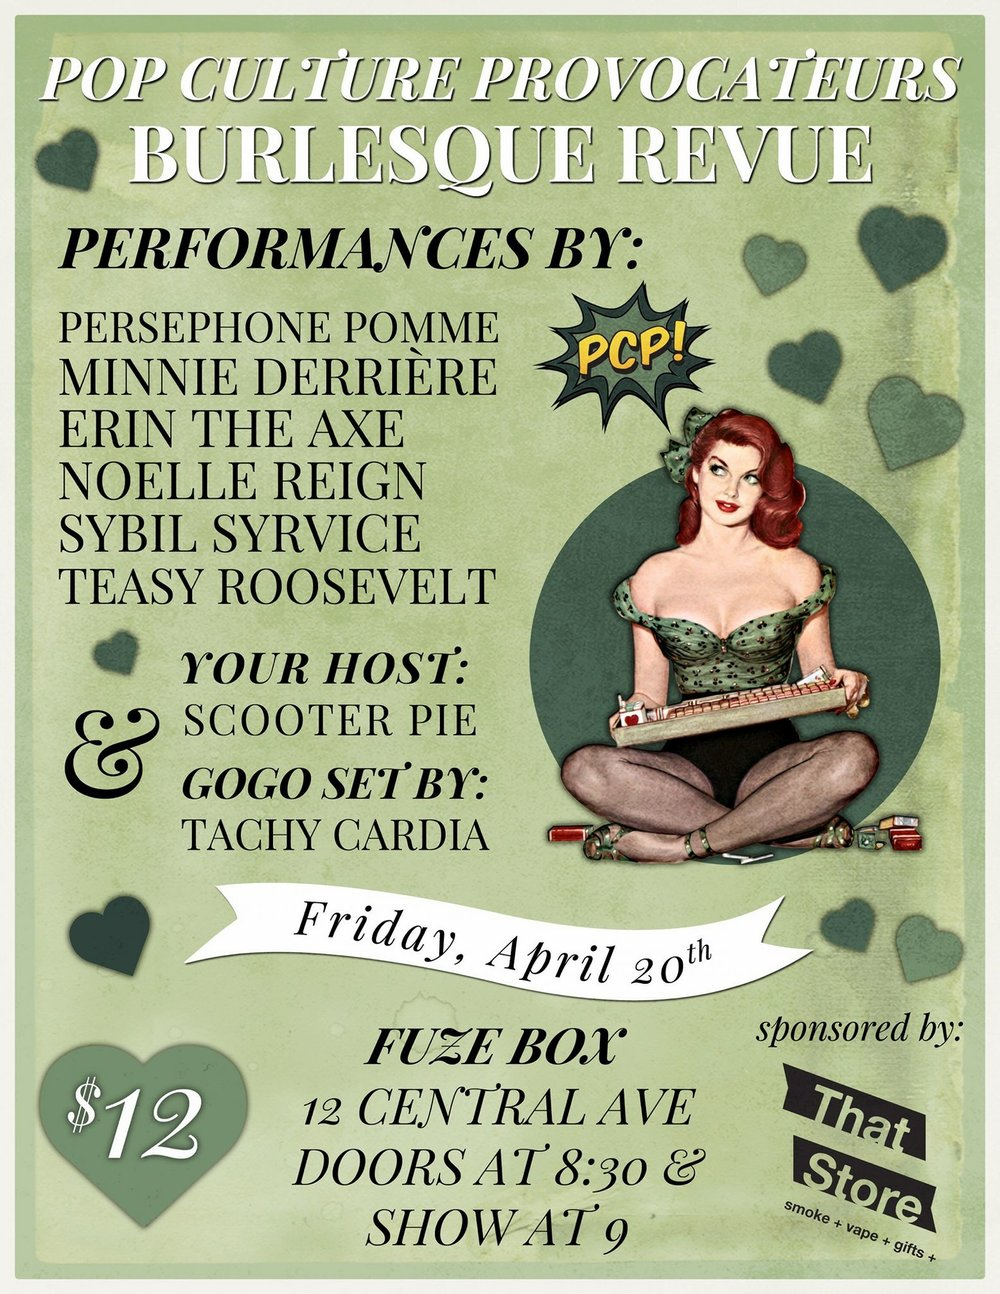 - The smoking hot performers from Pop Culture Provocateurs are back for a special 4/20 performance!Win prizes from That Store in the raffle! Join Pop Culture Provocateurs for the 4/20 edition of our monthly burlesque revue! Featuring smoky, seductive, silly acts by...ERIN THE AXEMINNIE DERRIÈRENOELLE REIGNPERSEPHONE POMMESYBIL SYRVICETEASY ROOSEVELTHosted by SCOOTER PIEGogo set by out stage kitten, TACHY CARDIAFRIDAY, APRIL 20THDOORS AT 830 // SHOW AT 9FUZE BOX 12 CENTRAL AVE$12